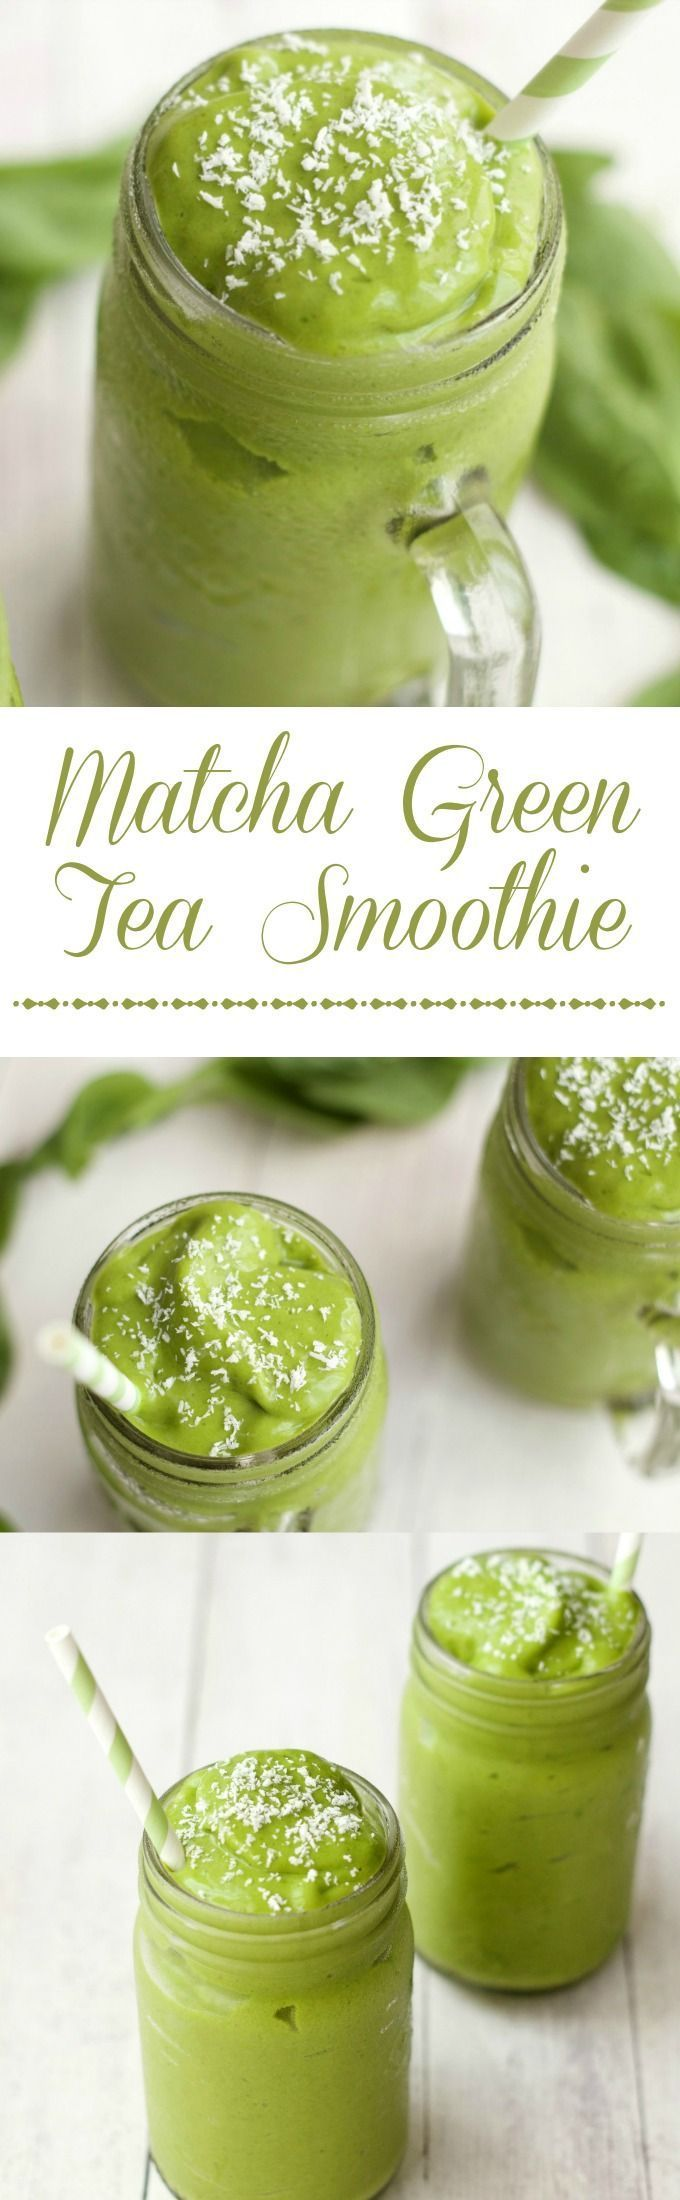 Matcha Green Tea Smoothie, quick and easy 5-Ingredient recipe.   Find more stuff: http://www.victoriasbestmatchatea.com